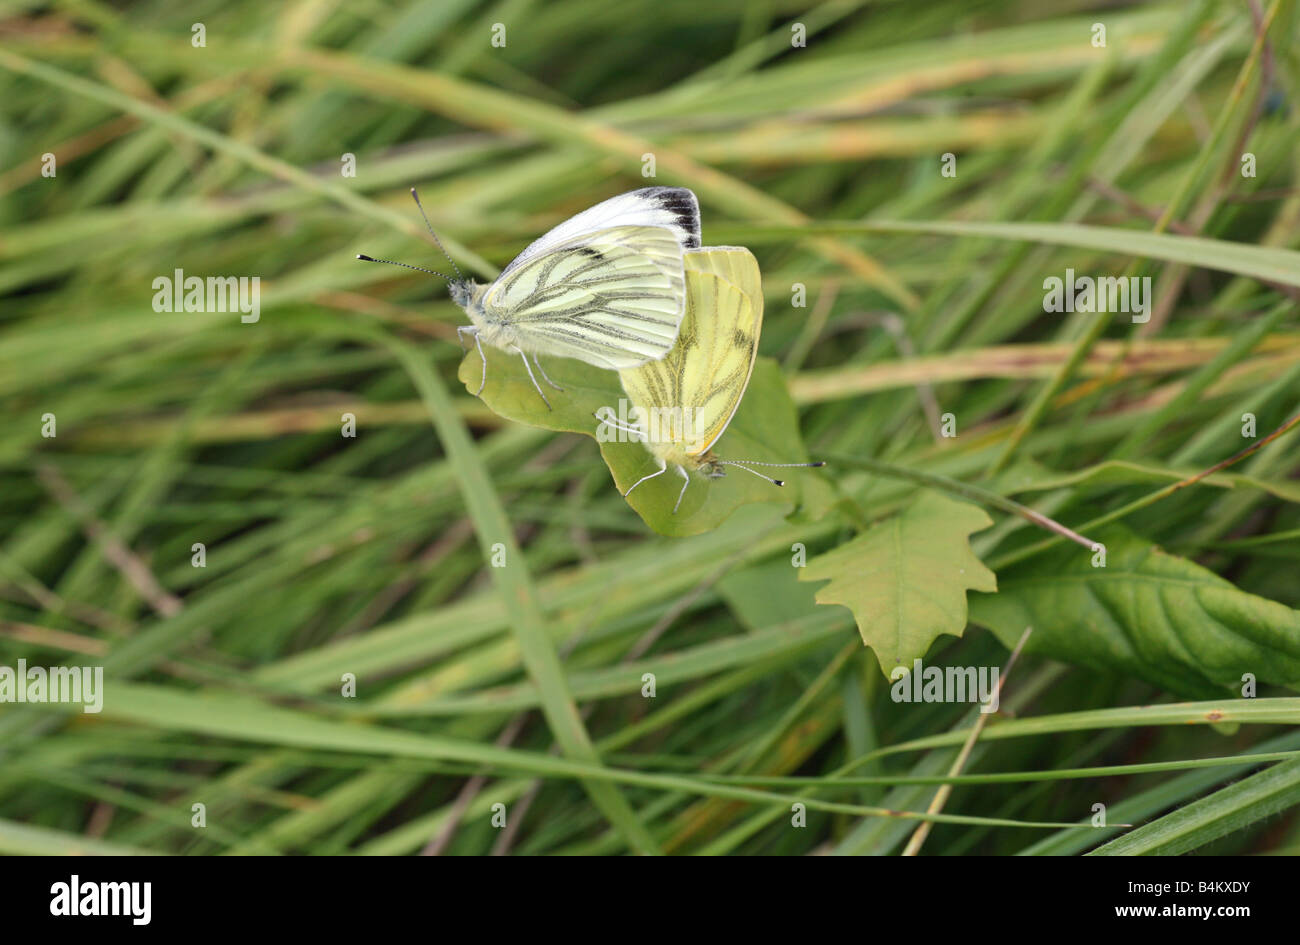 two-green-veined-white-pieris-napi-butterflies-mating-on-a-grass-stem-B4KXDY.jpg